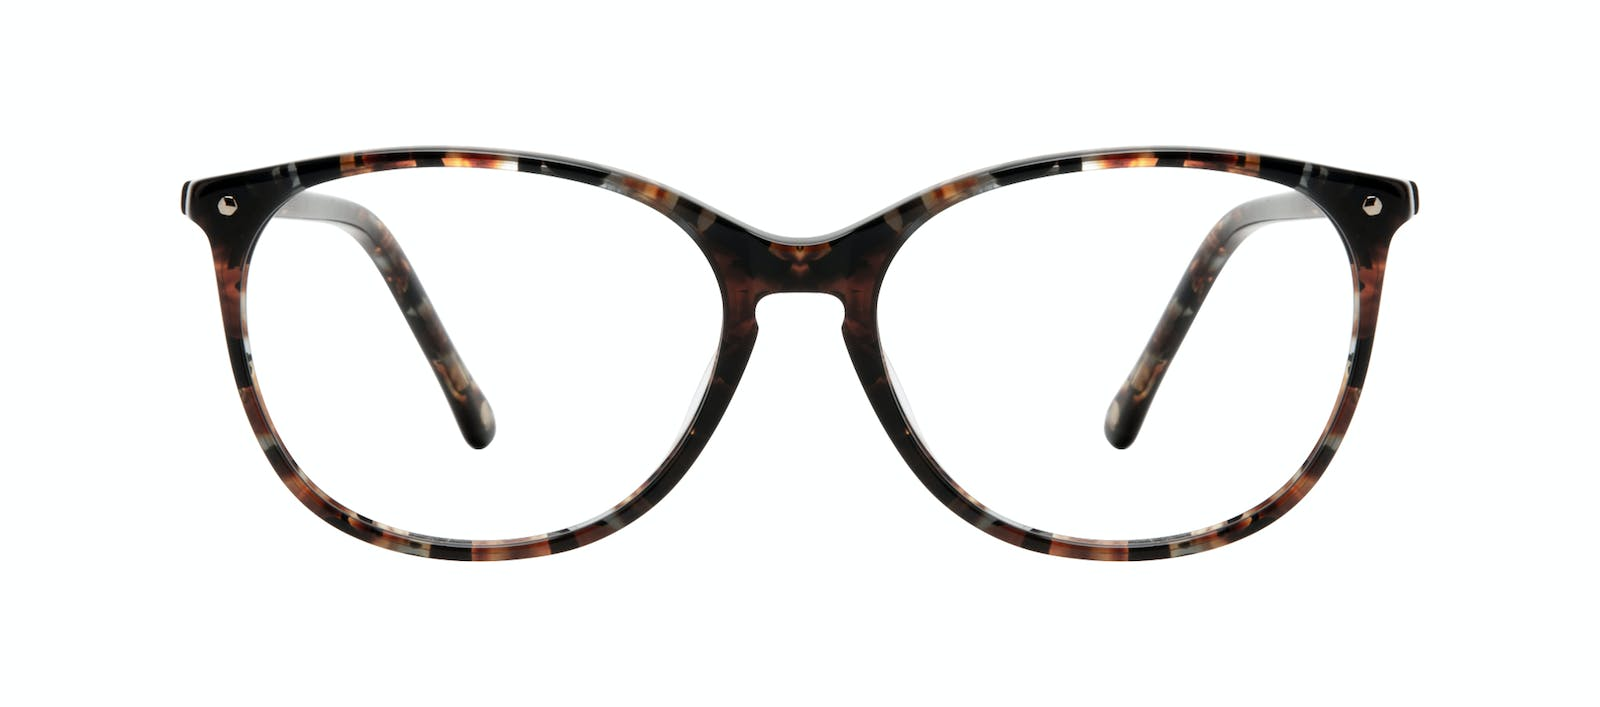 903267f1096 Affordable Fashion Glasses Rectangle Square Round Eyeglasses Women Nadine  Sepia Front